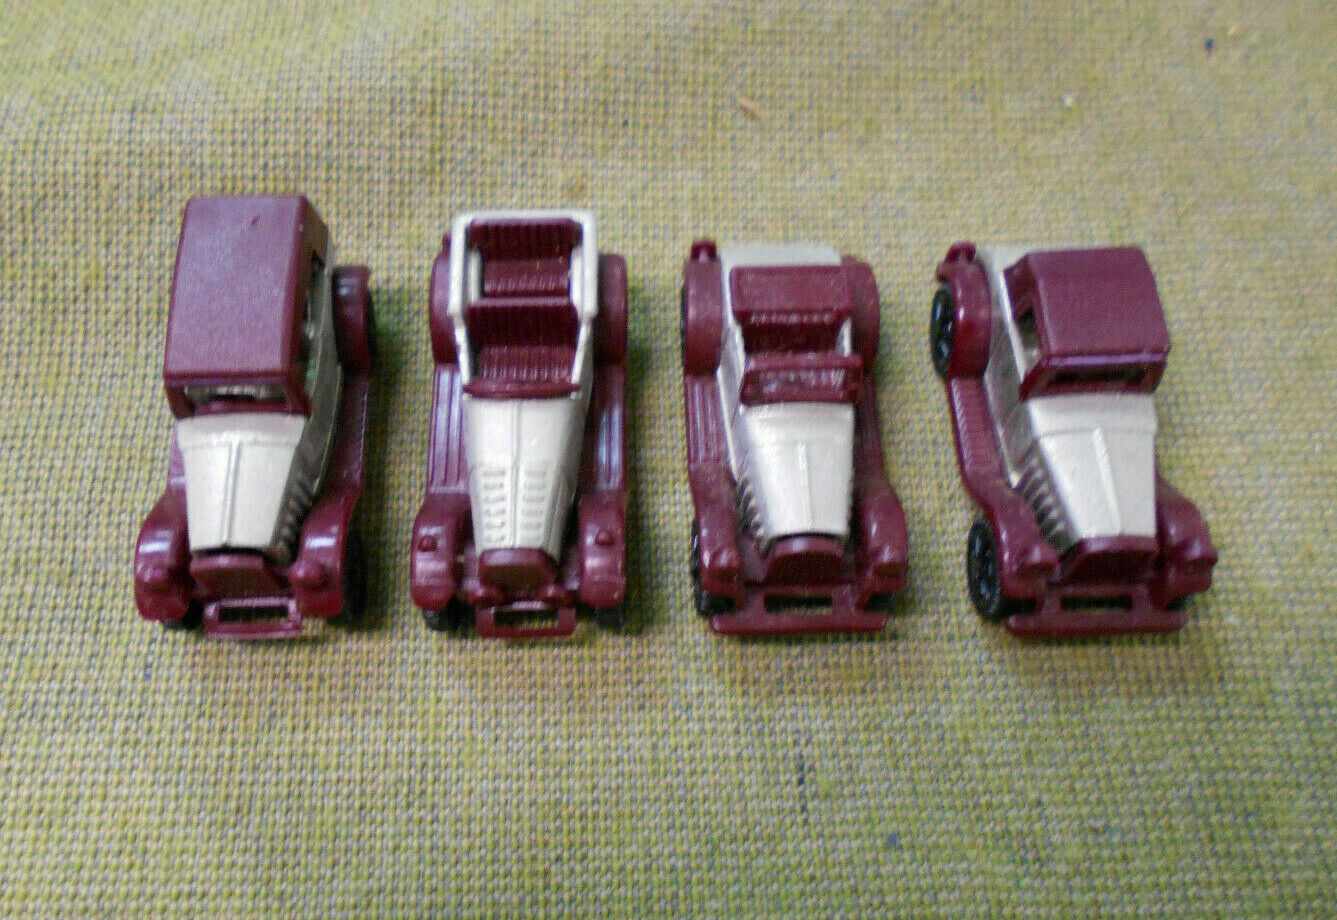 OO.   1995  KINDER SURPRISE  METAL MAROON CLASSIC CAR SET(4)